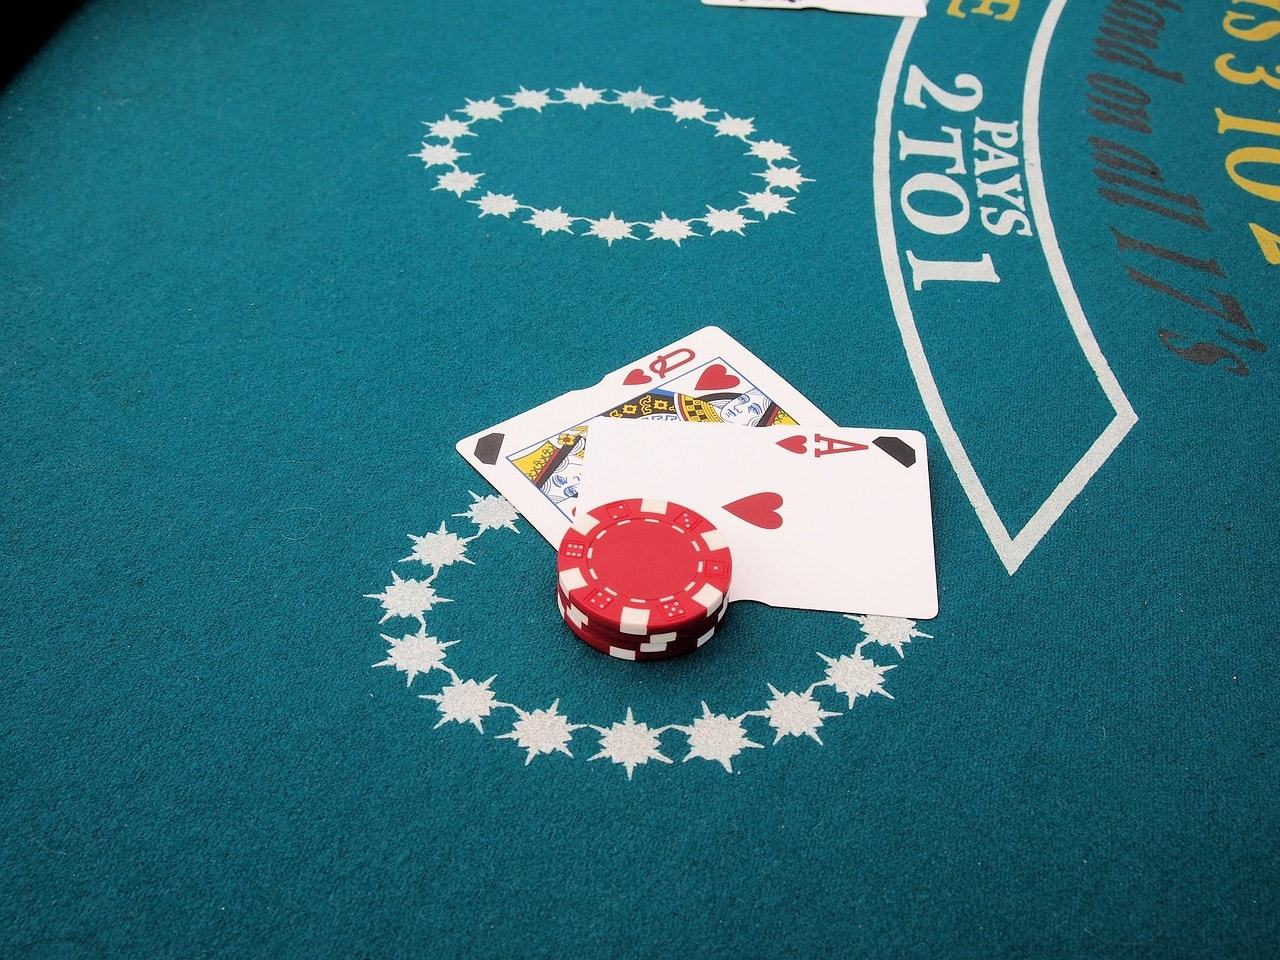 Blackjack Rules: How To Play